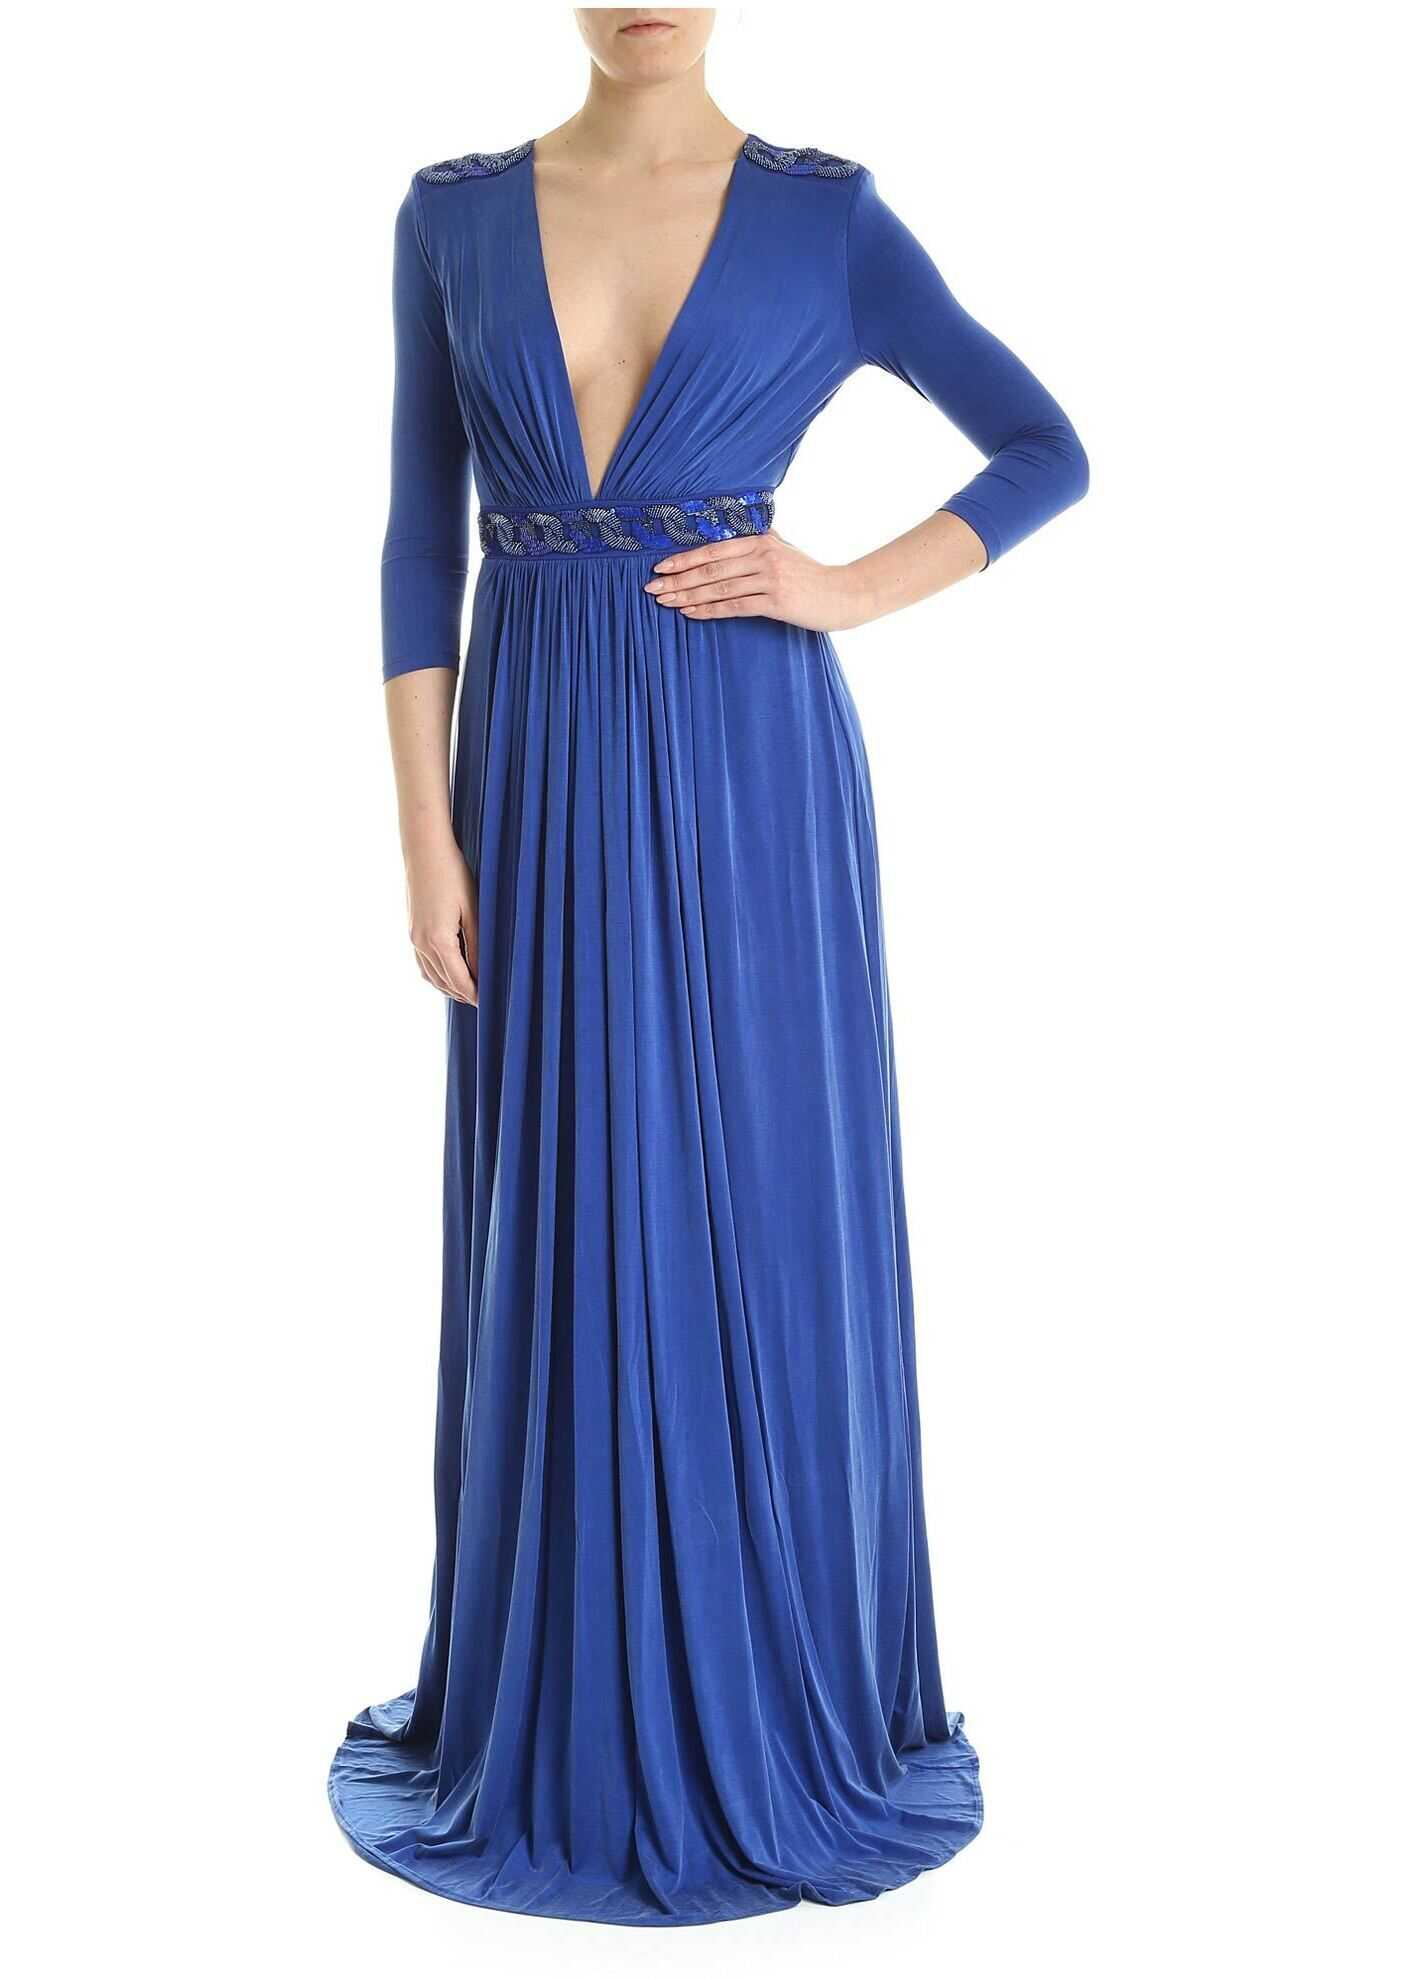 Elisabetta Franchi Embroidery Long Dress In Cobalt Blue Blue